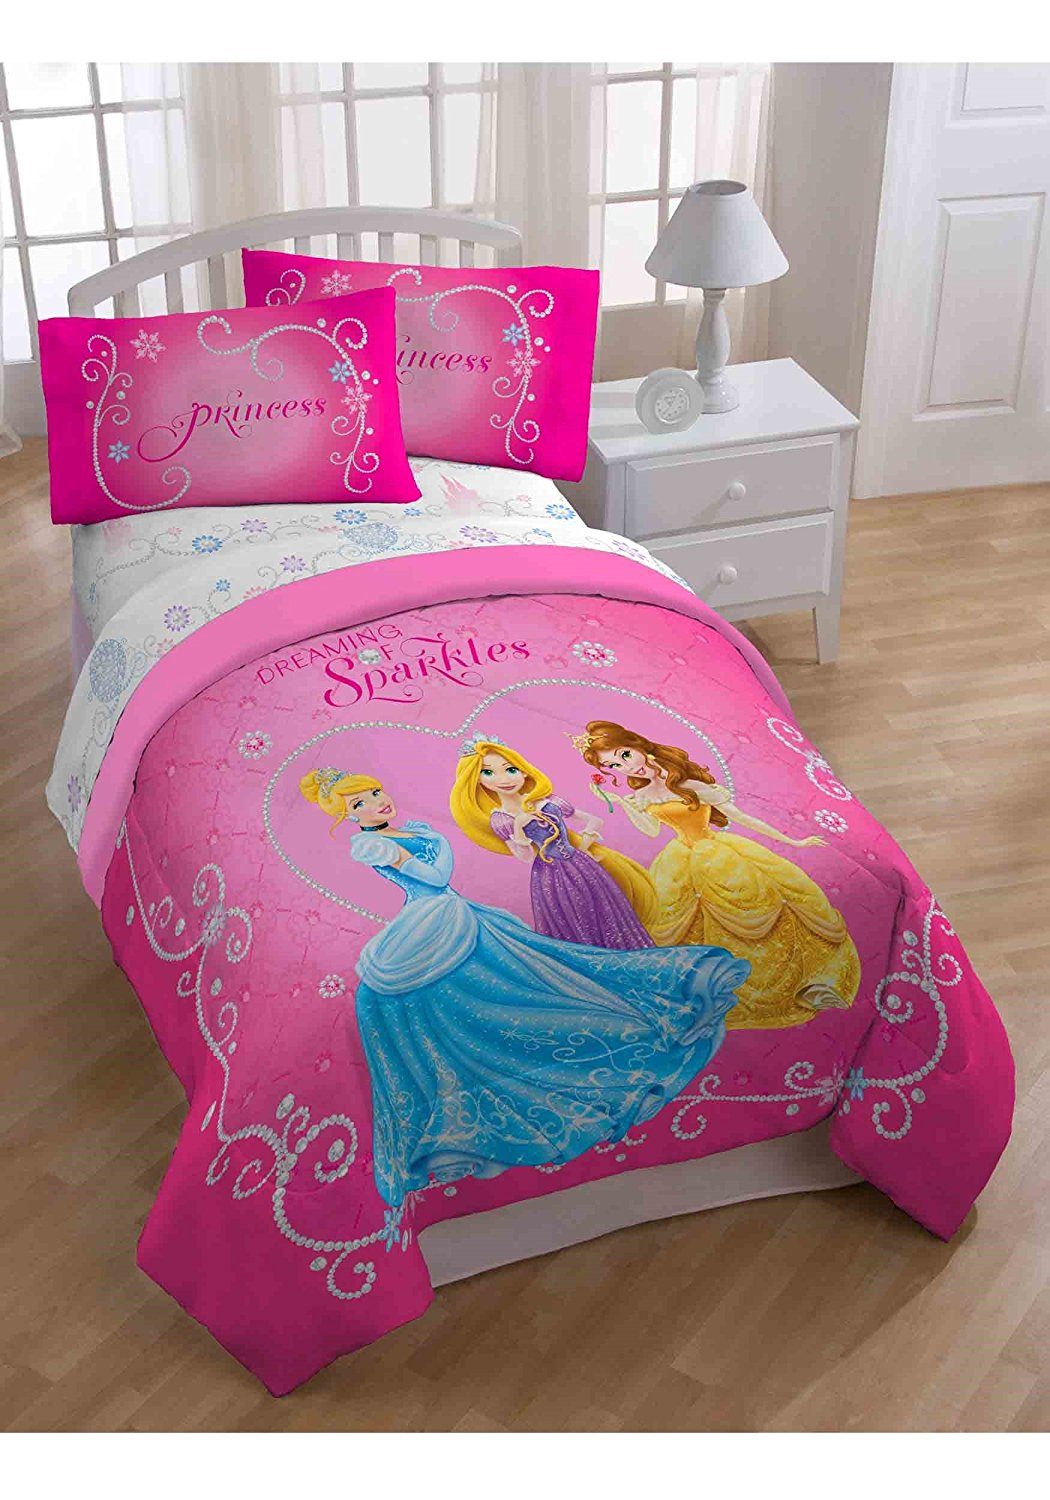 Tangled Bedding Comforter Set For Kid Happiness